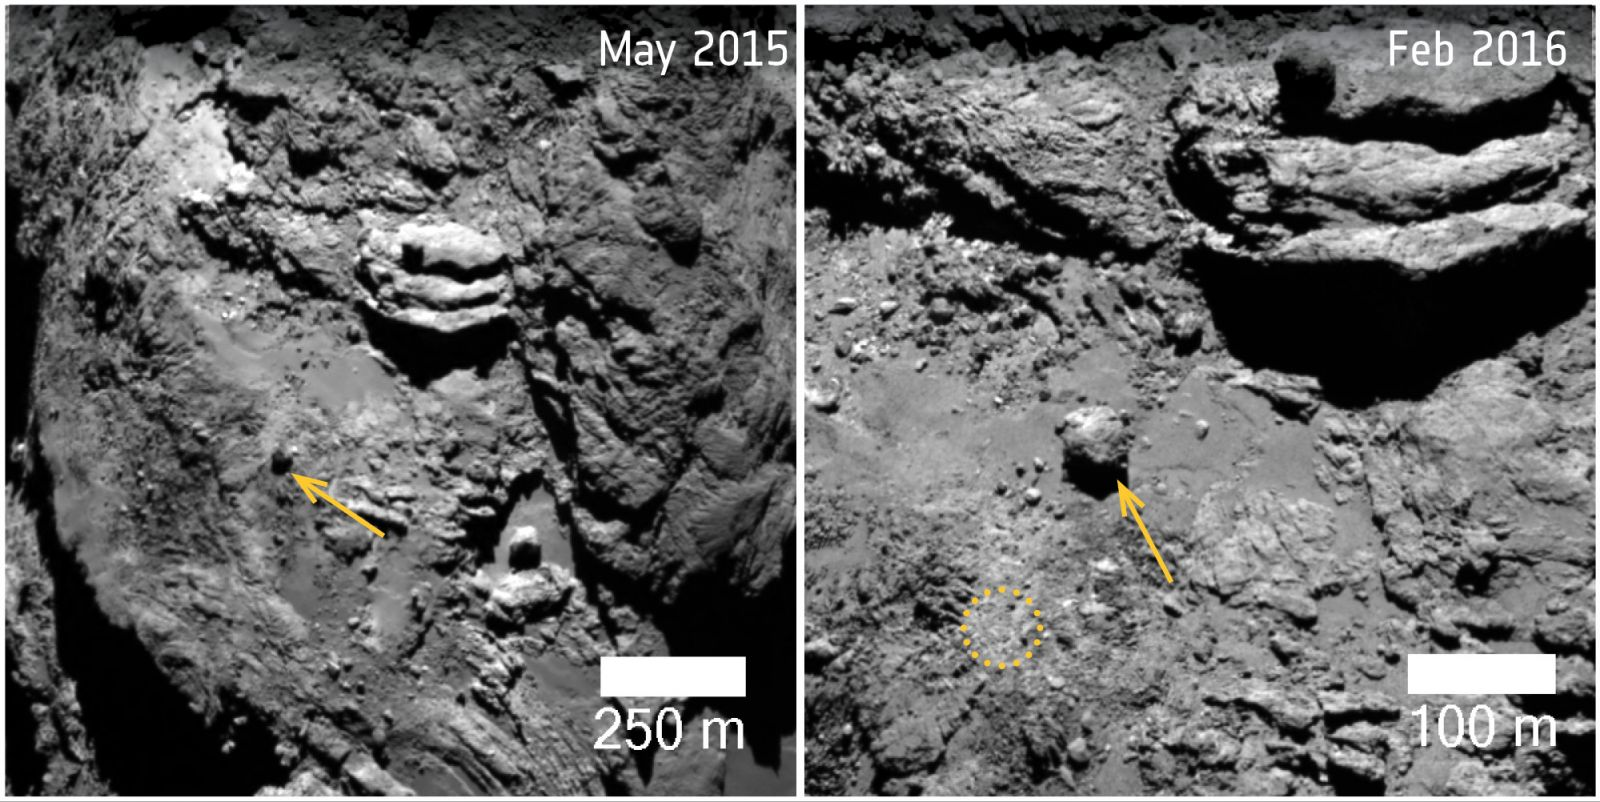 Comet 67P changes: moving boulder in Khonsu